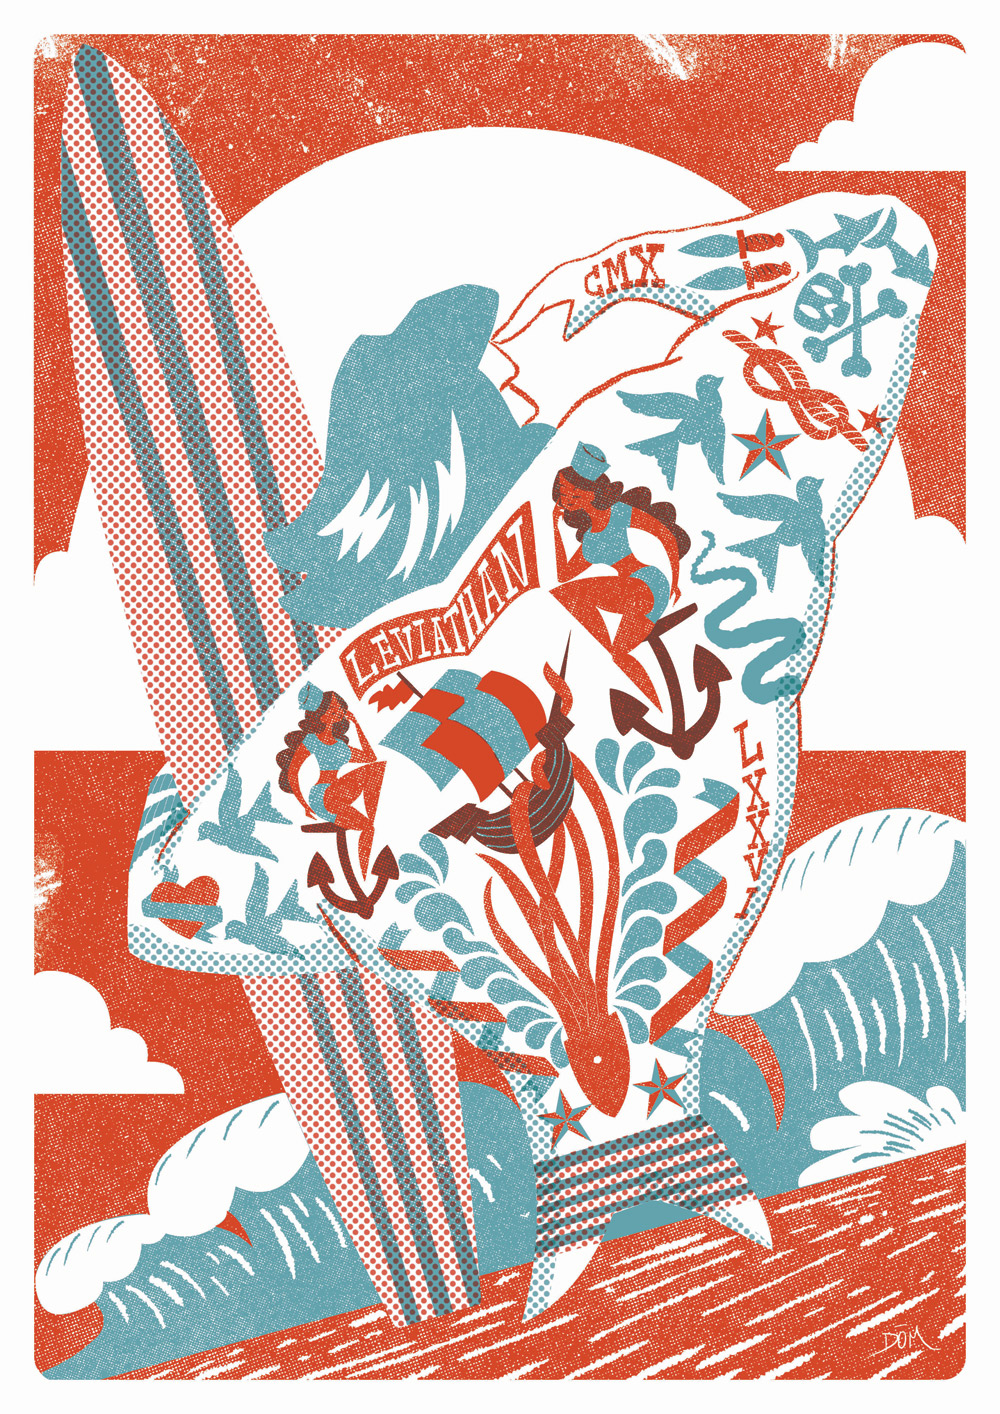 Limited edition screen print for Damn Fine Print and Sure Shots Film Festival, Ireland.